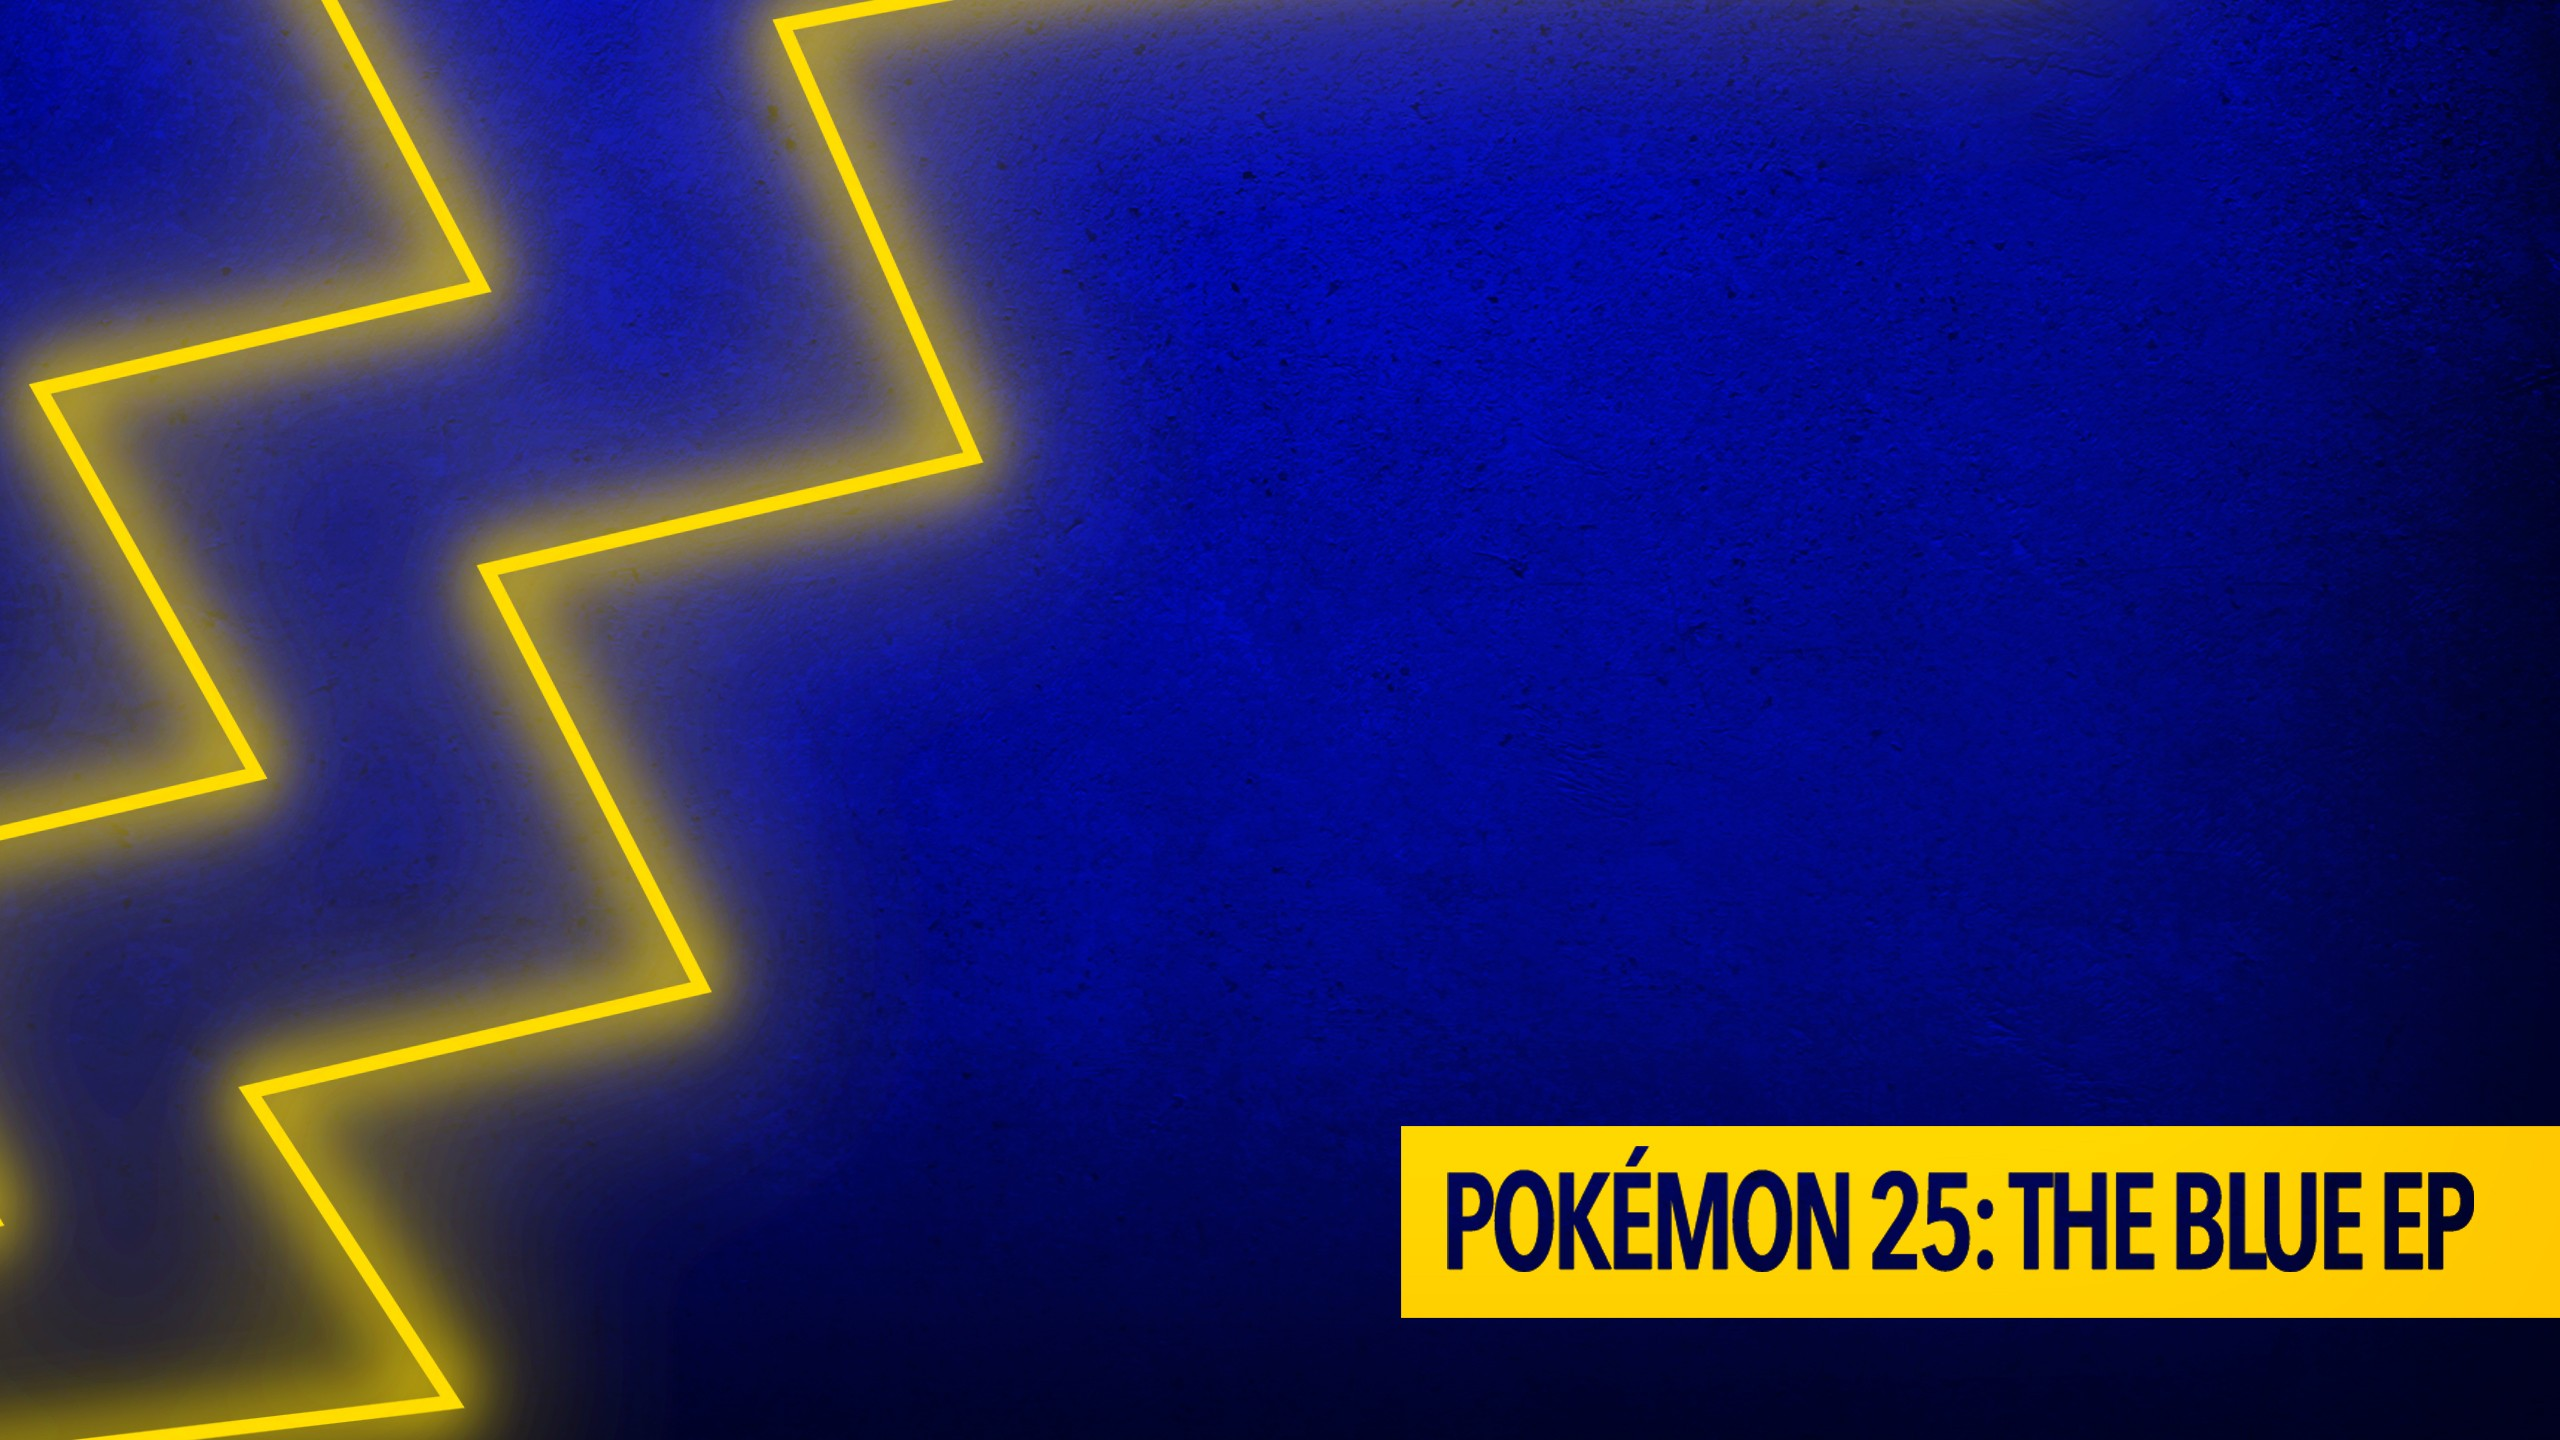 Pokémon 25: The Blue EP graphic with a stylized lighting bolt over a blue backdrop.